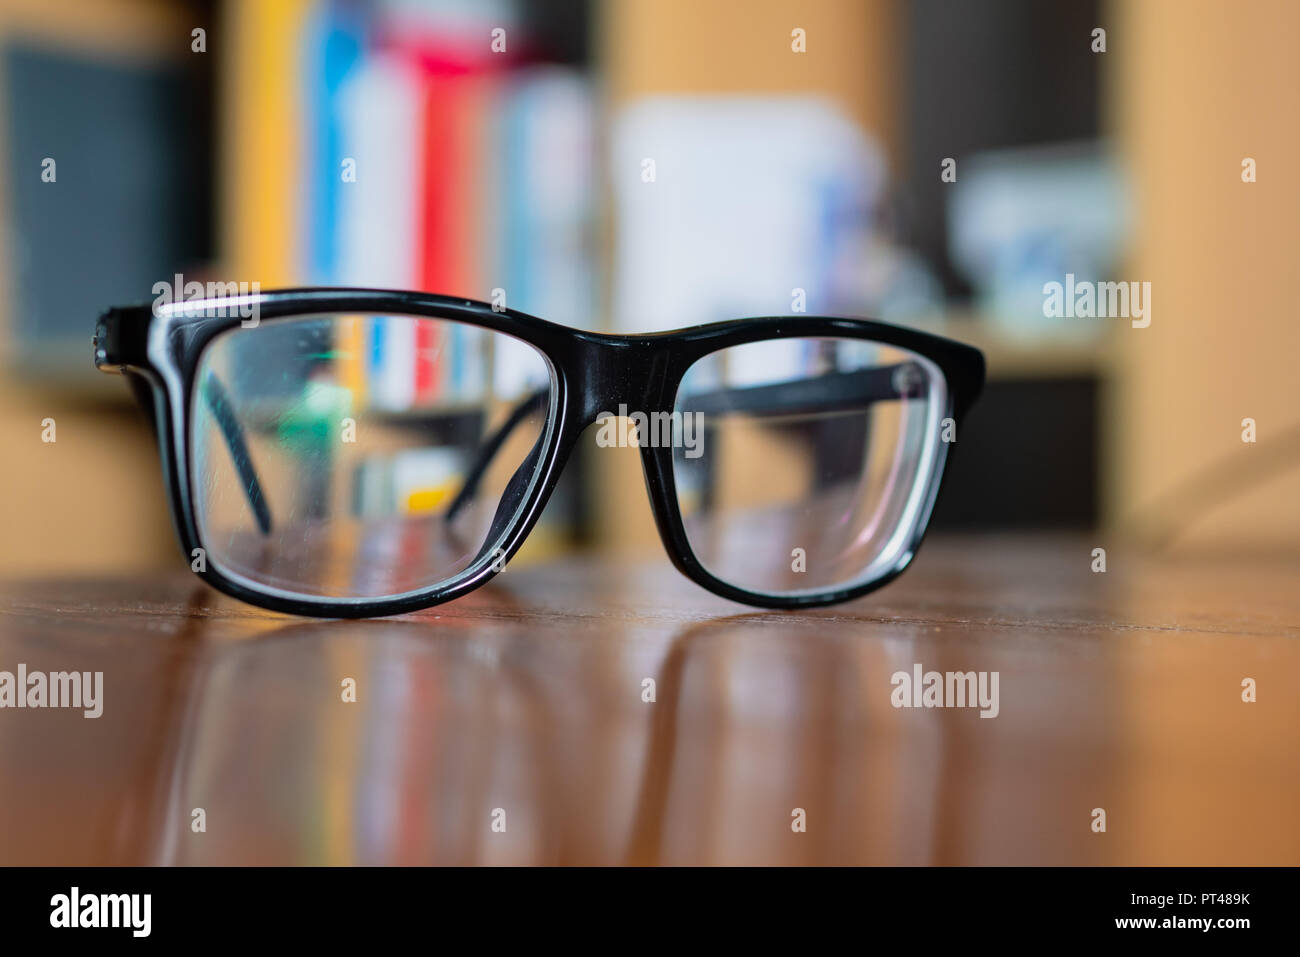 Eyeglasses on a table with bookshelf on background - Stock Image